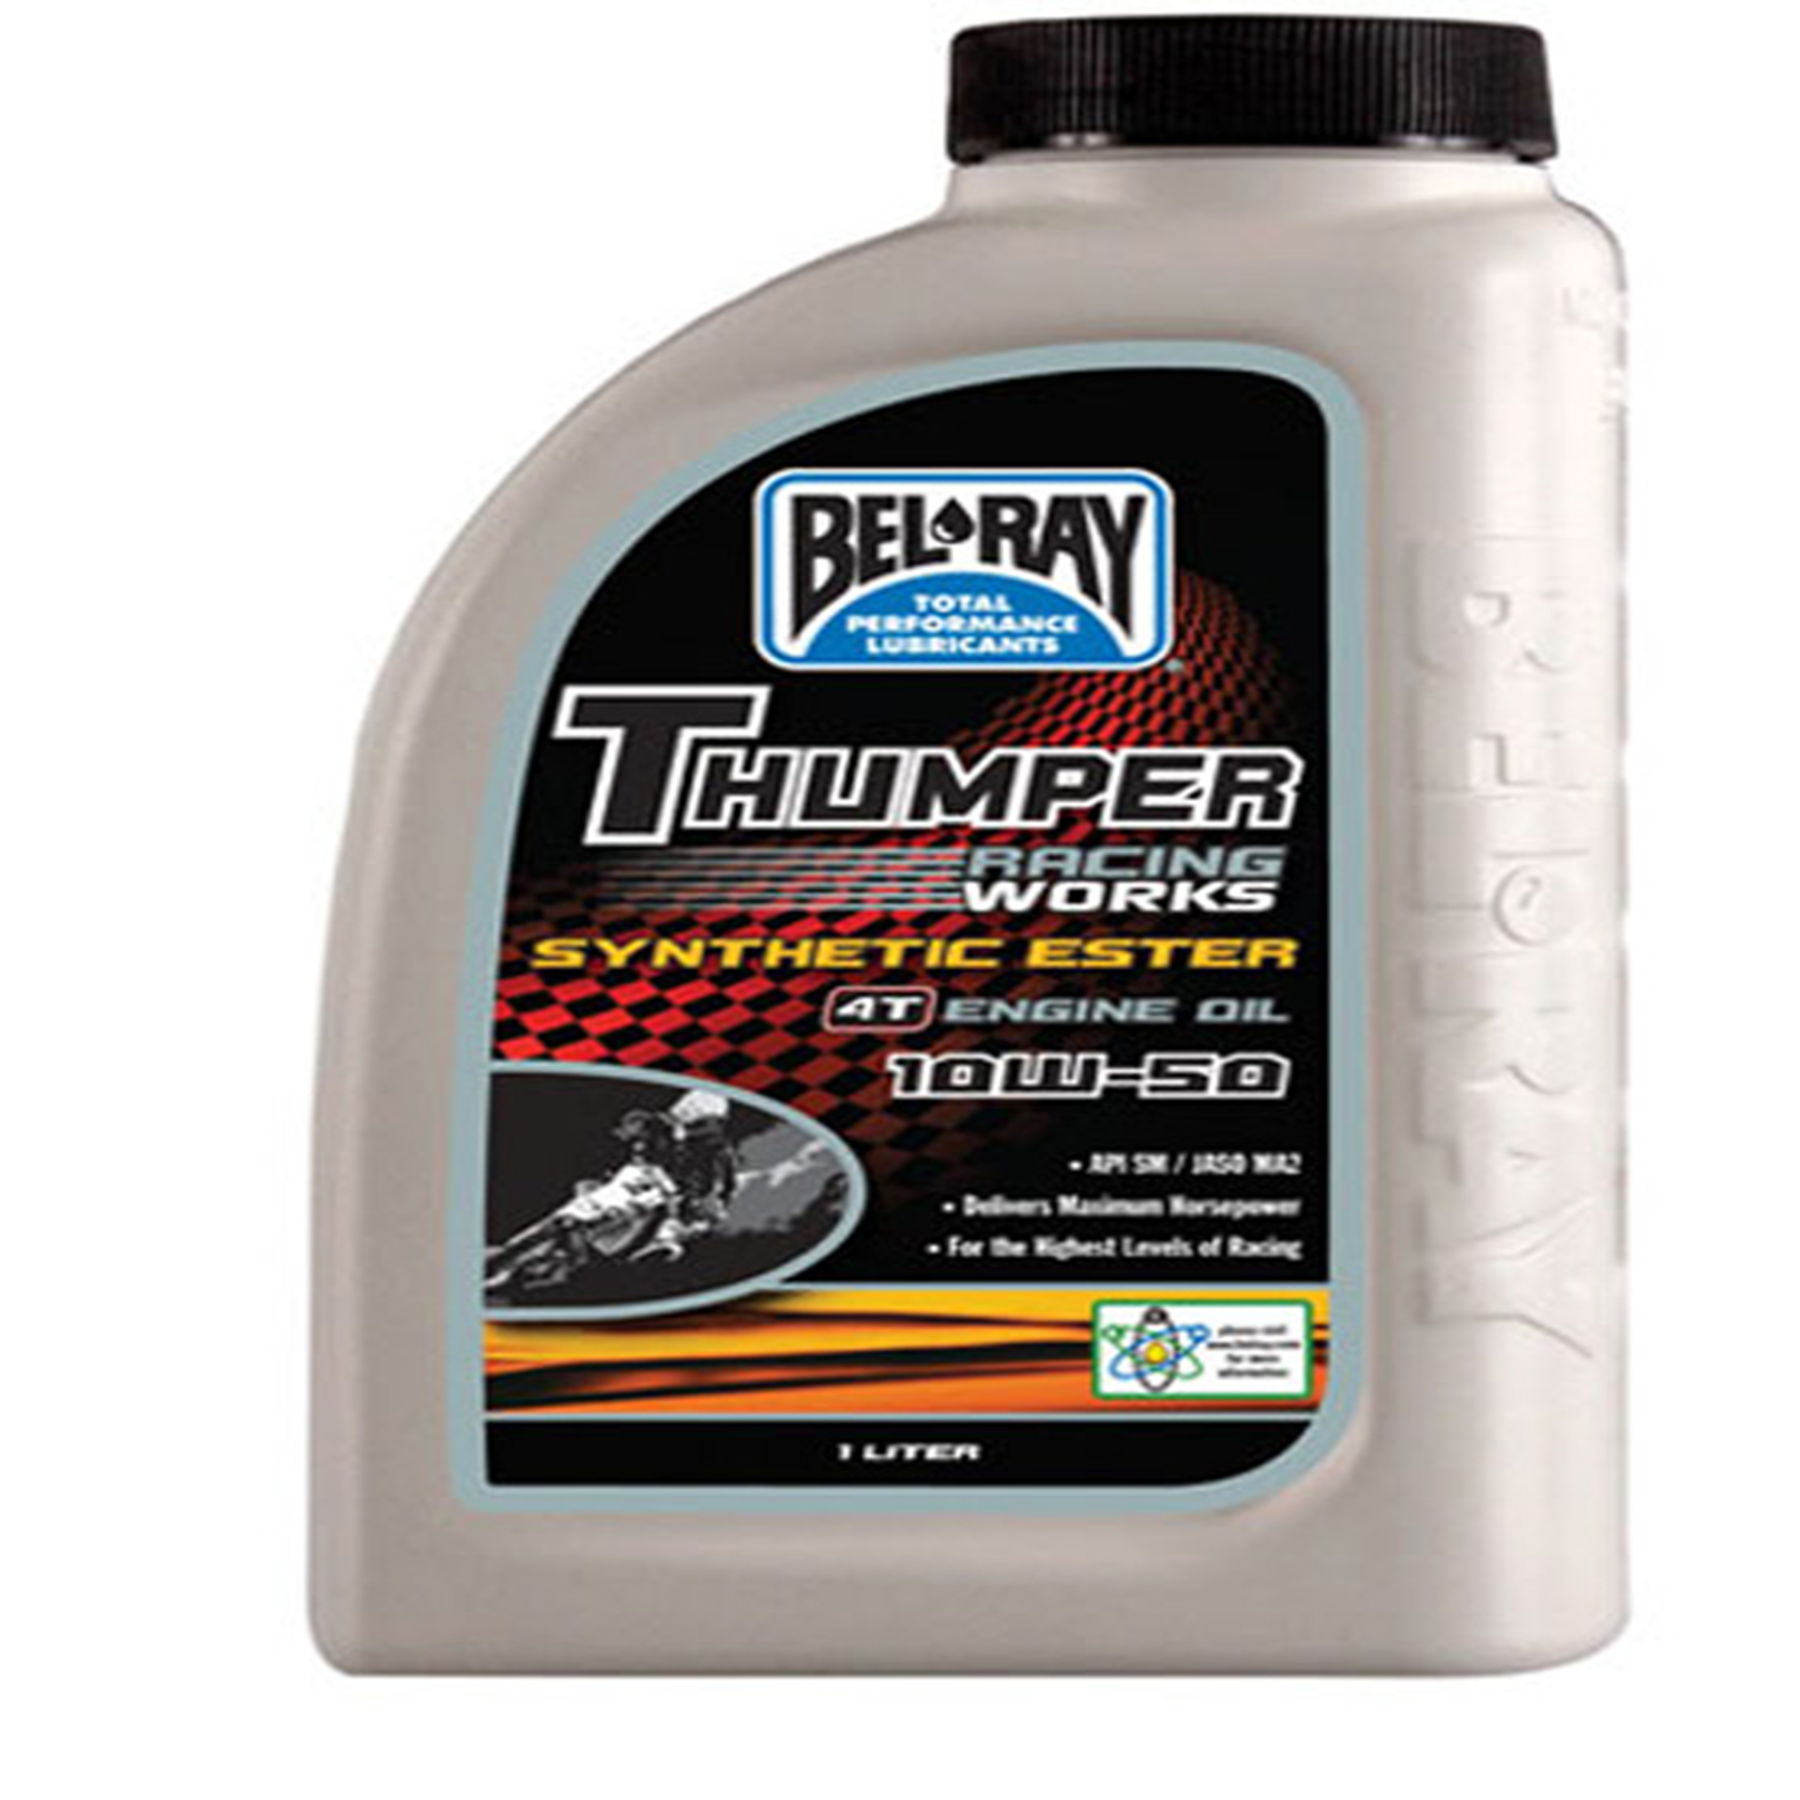 BEL-RAY WORKS THUMPER RACING FULL SYN ESTER 4T 10W-50 (1L)